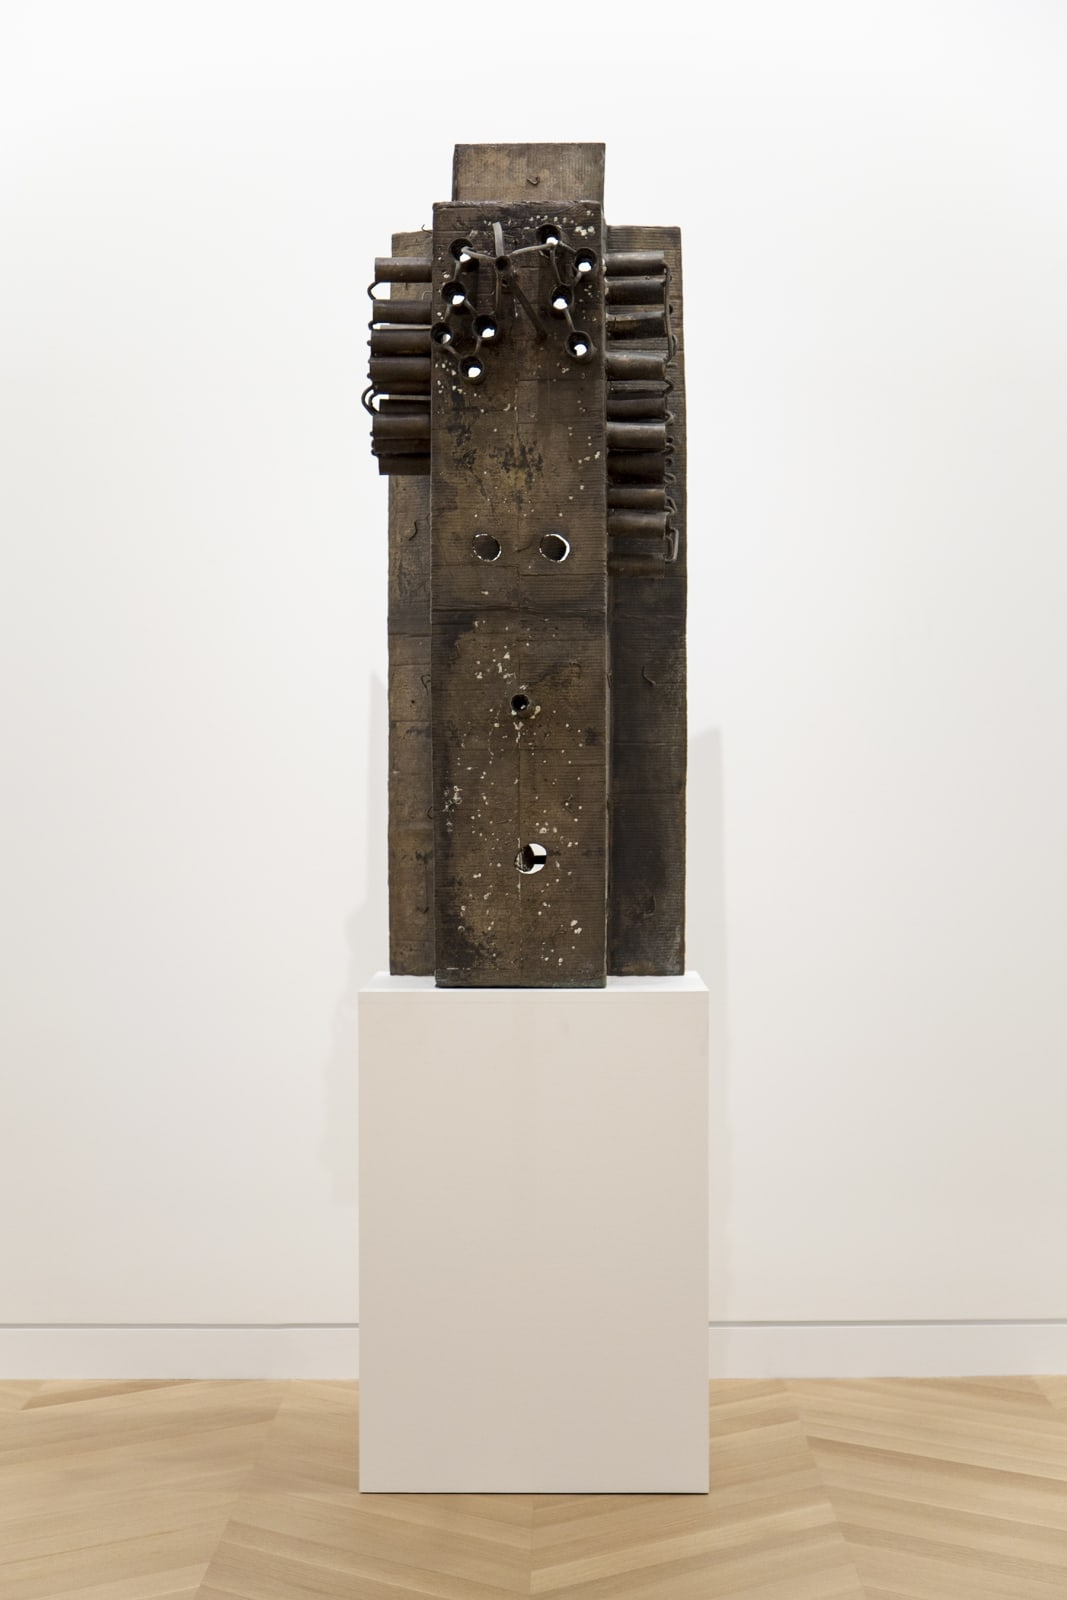 Mark Grotjahn Untitled (African, Gated Front and Back Mask) 2014 bronze 58 3/4 x 21 1/2 x 31 inches 149.2 x 54.6 x 78.7 cm